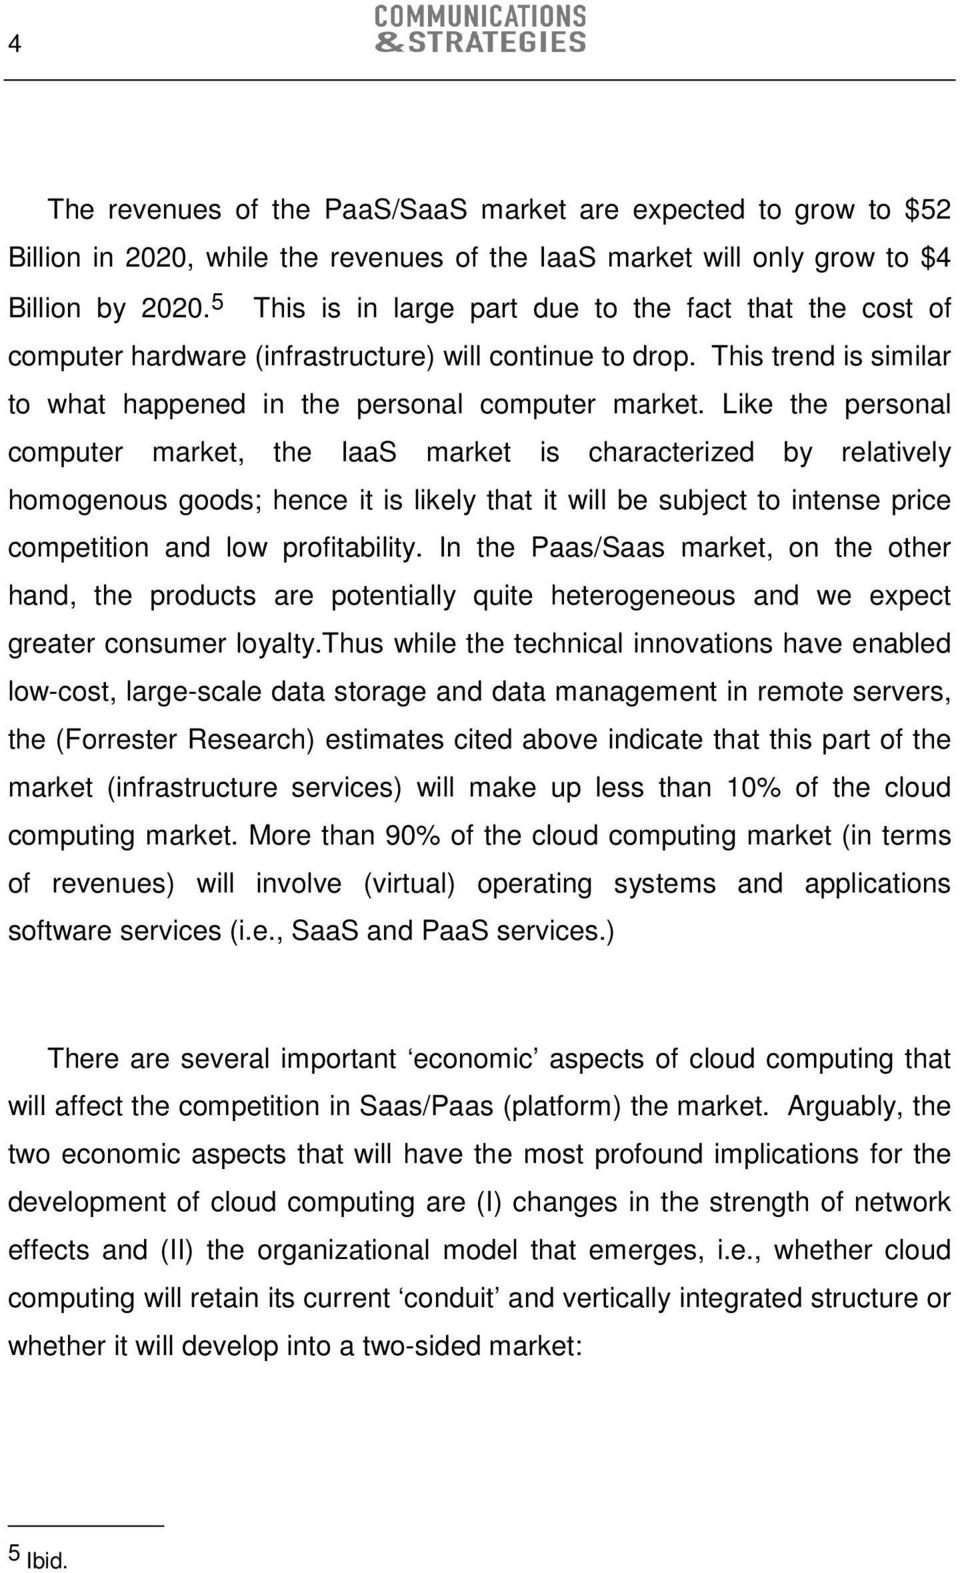 Like the personal computer market, the IaaS market is characterized by relatively homogenous goods; hence it is likely that it will be subject to intense price competition and low profitability.